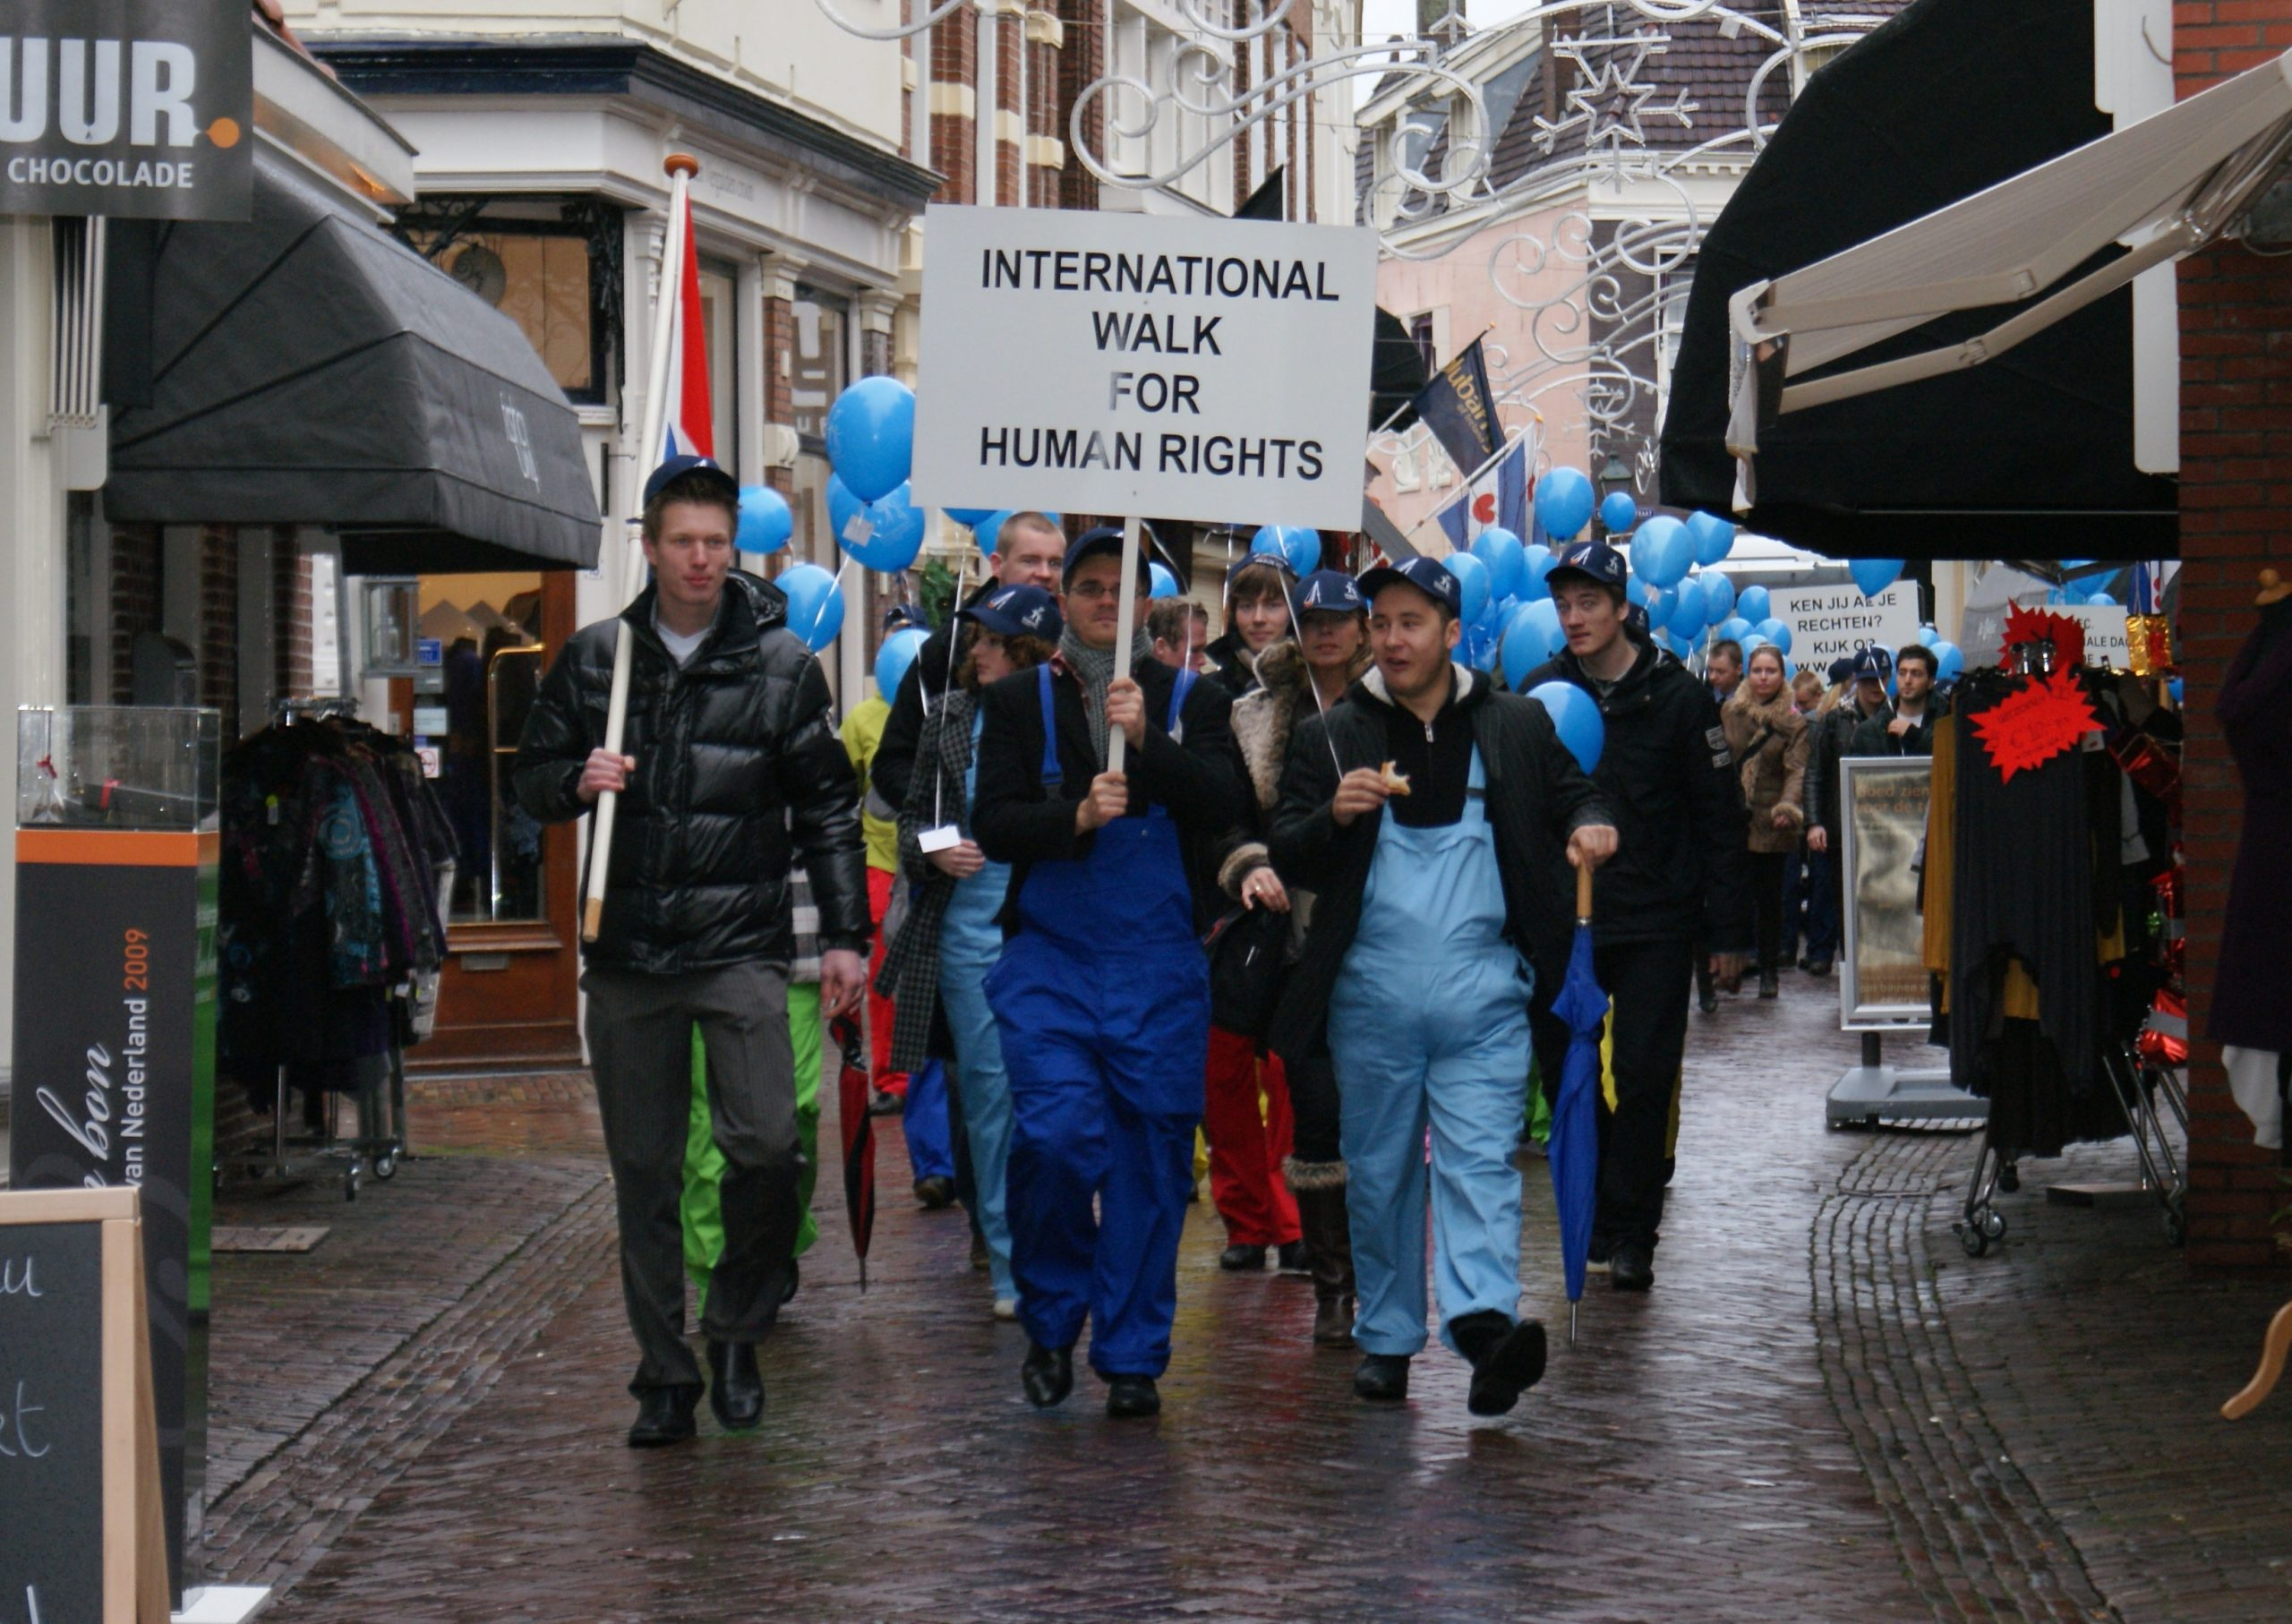 Youth for Human Rights Nederland